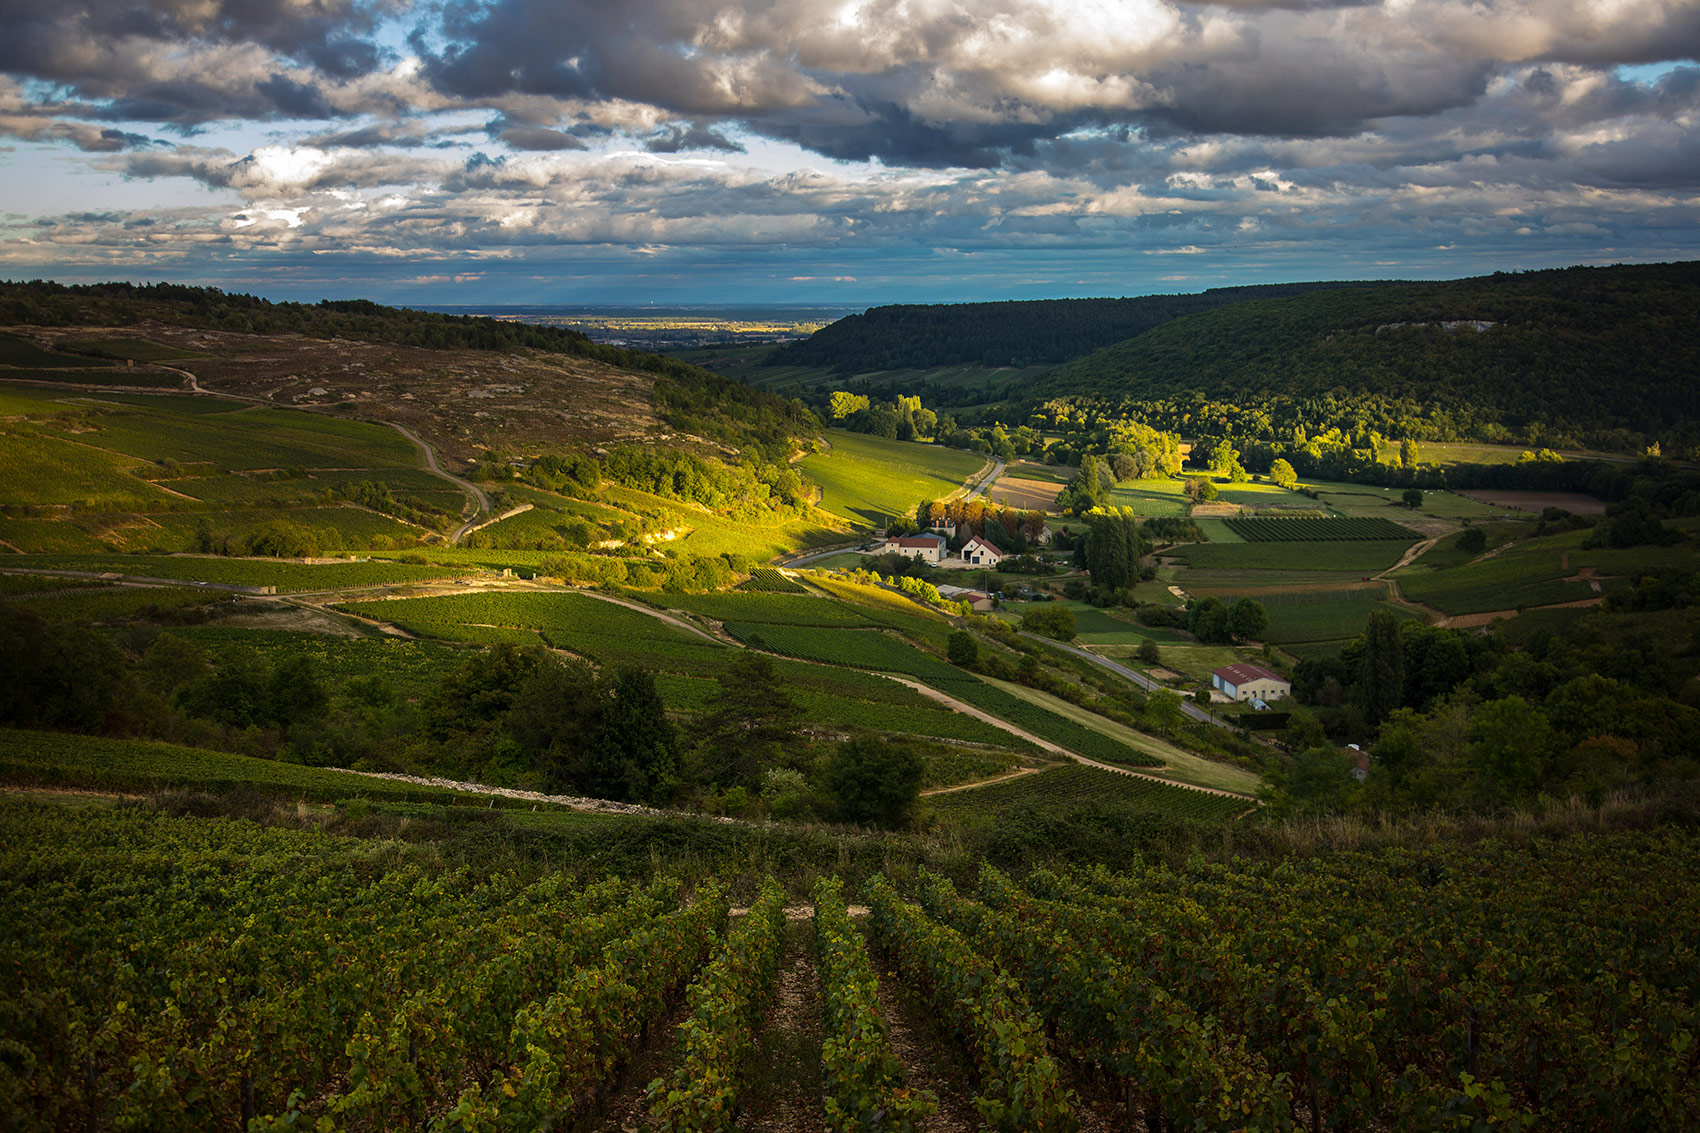 Bourgogne Landscape at Sunset